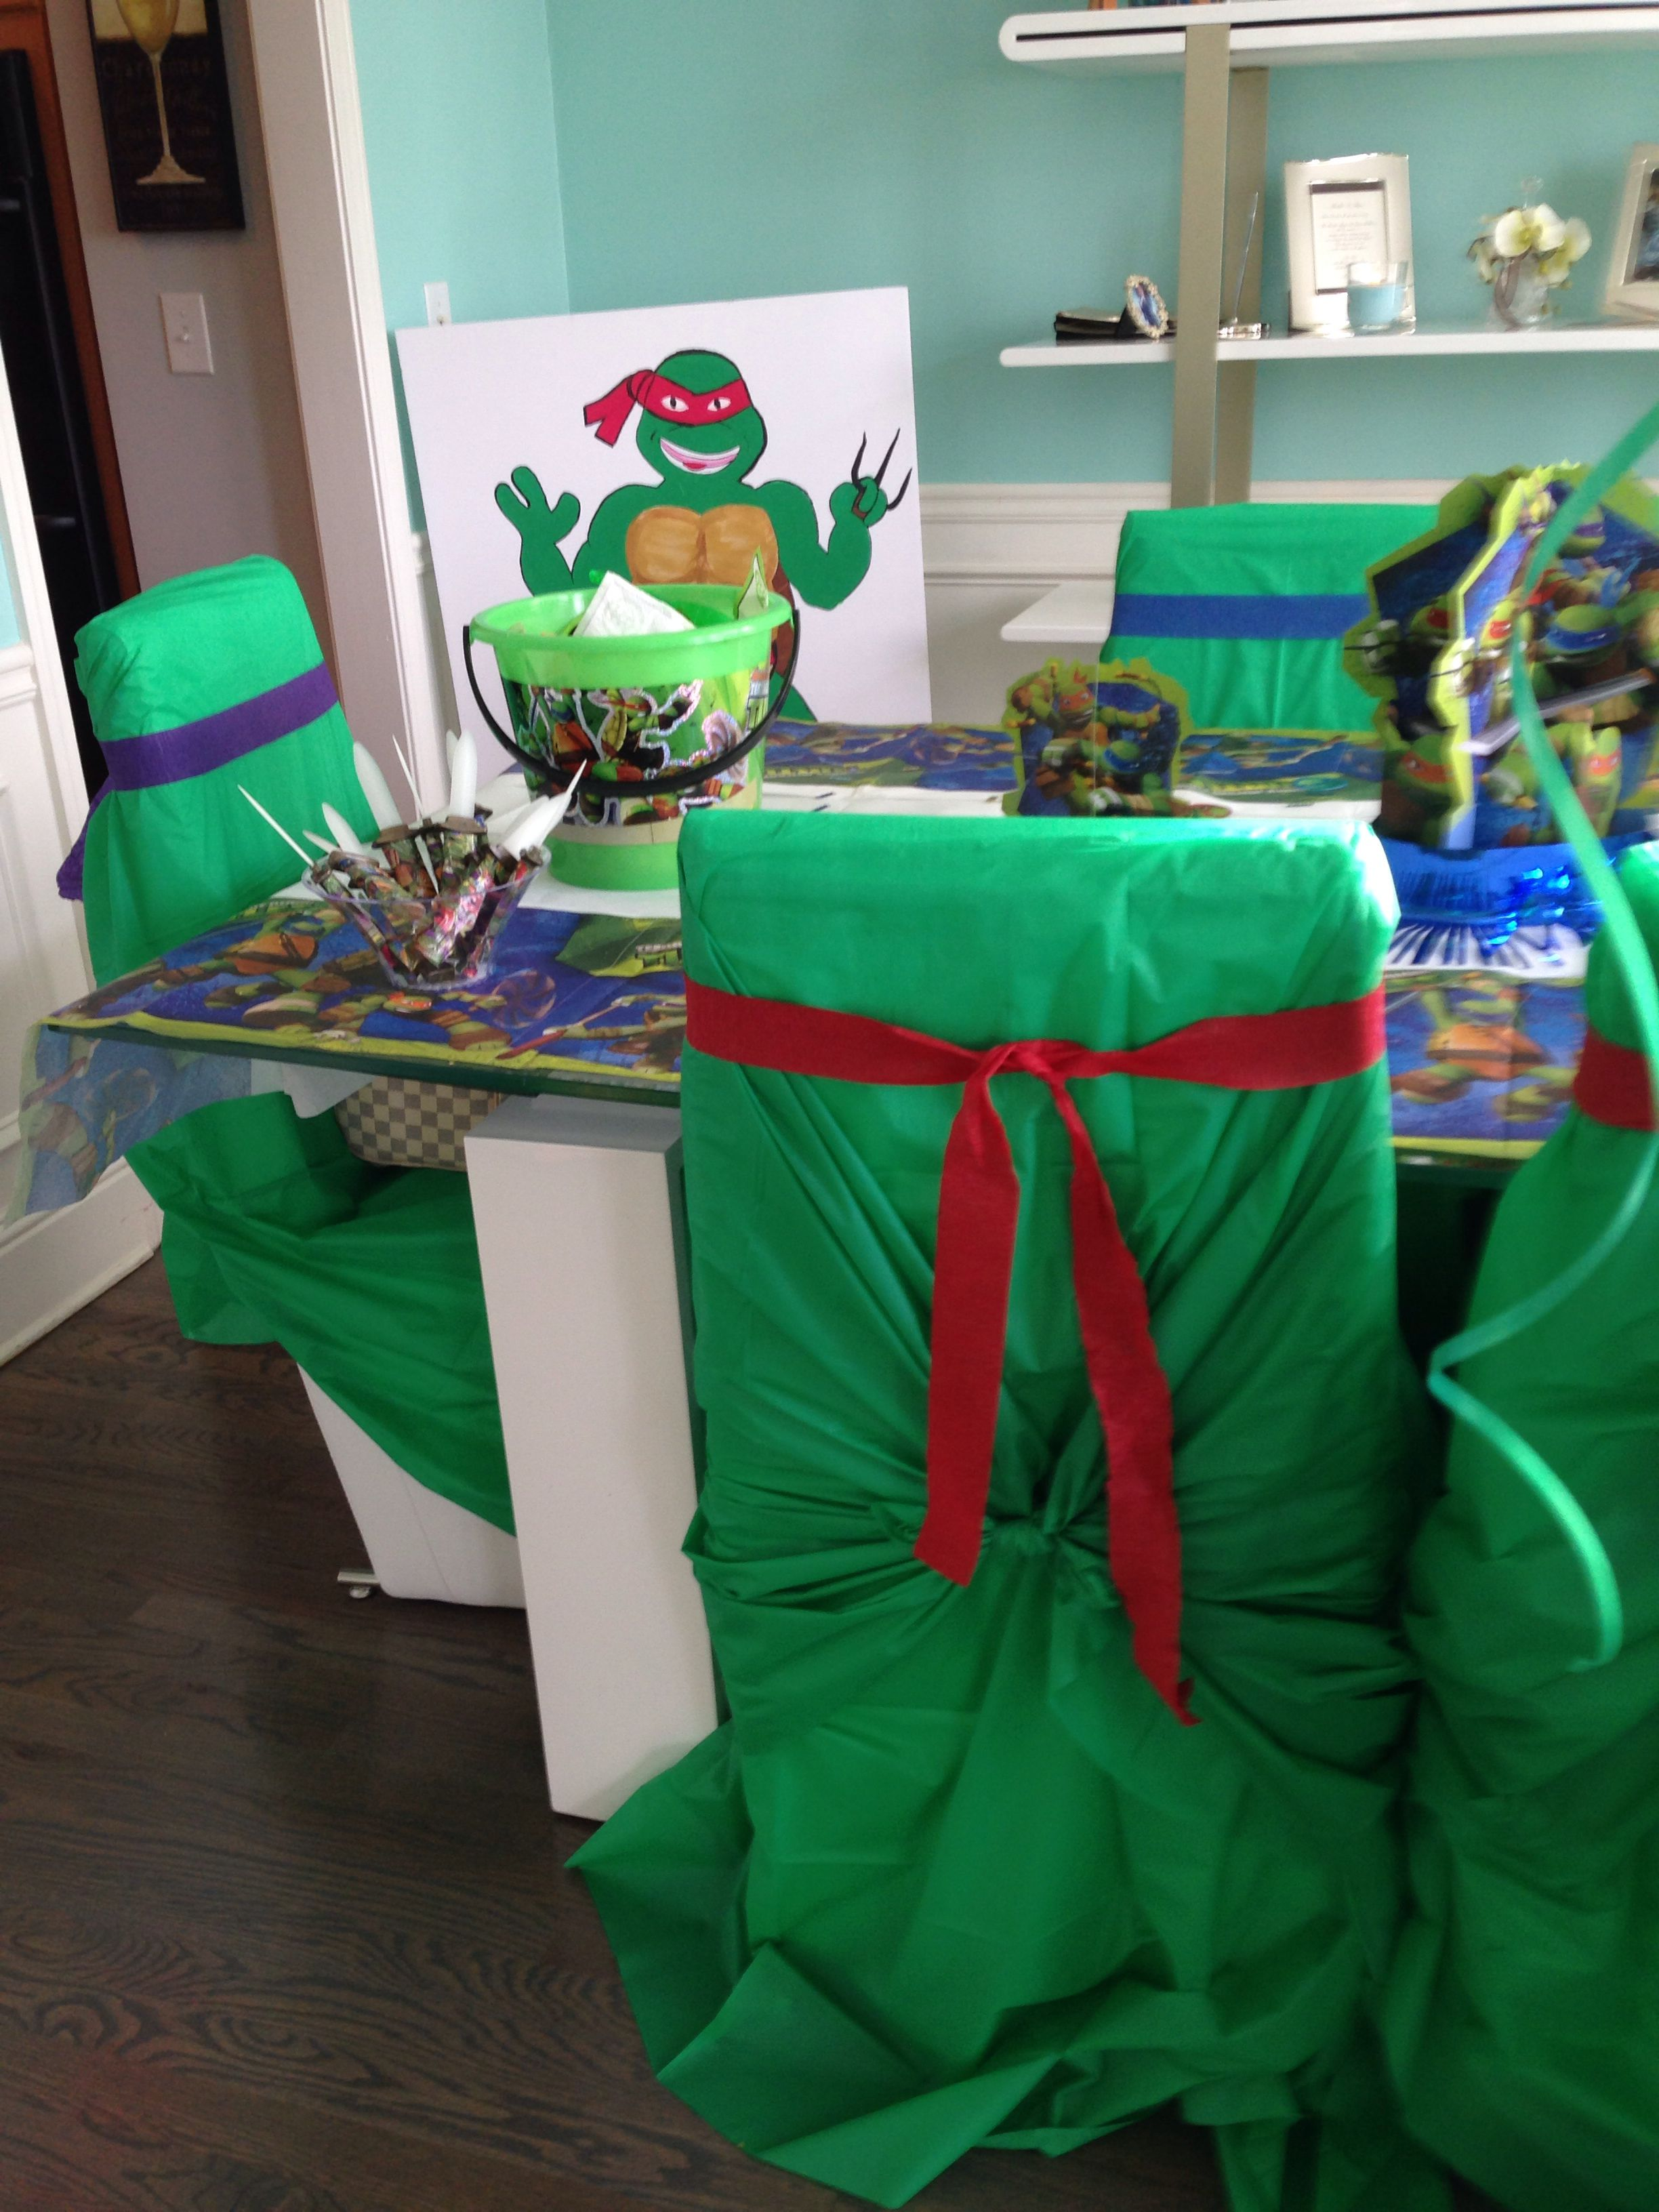 Ninja Turtles Chair Beach Umbrella With Clamp Turtle Covers Birthdays And Parties